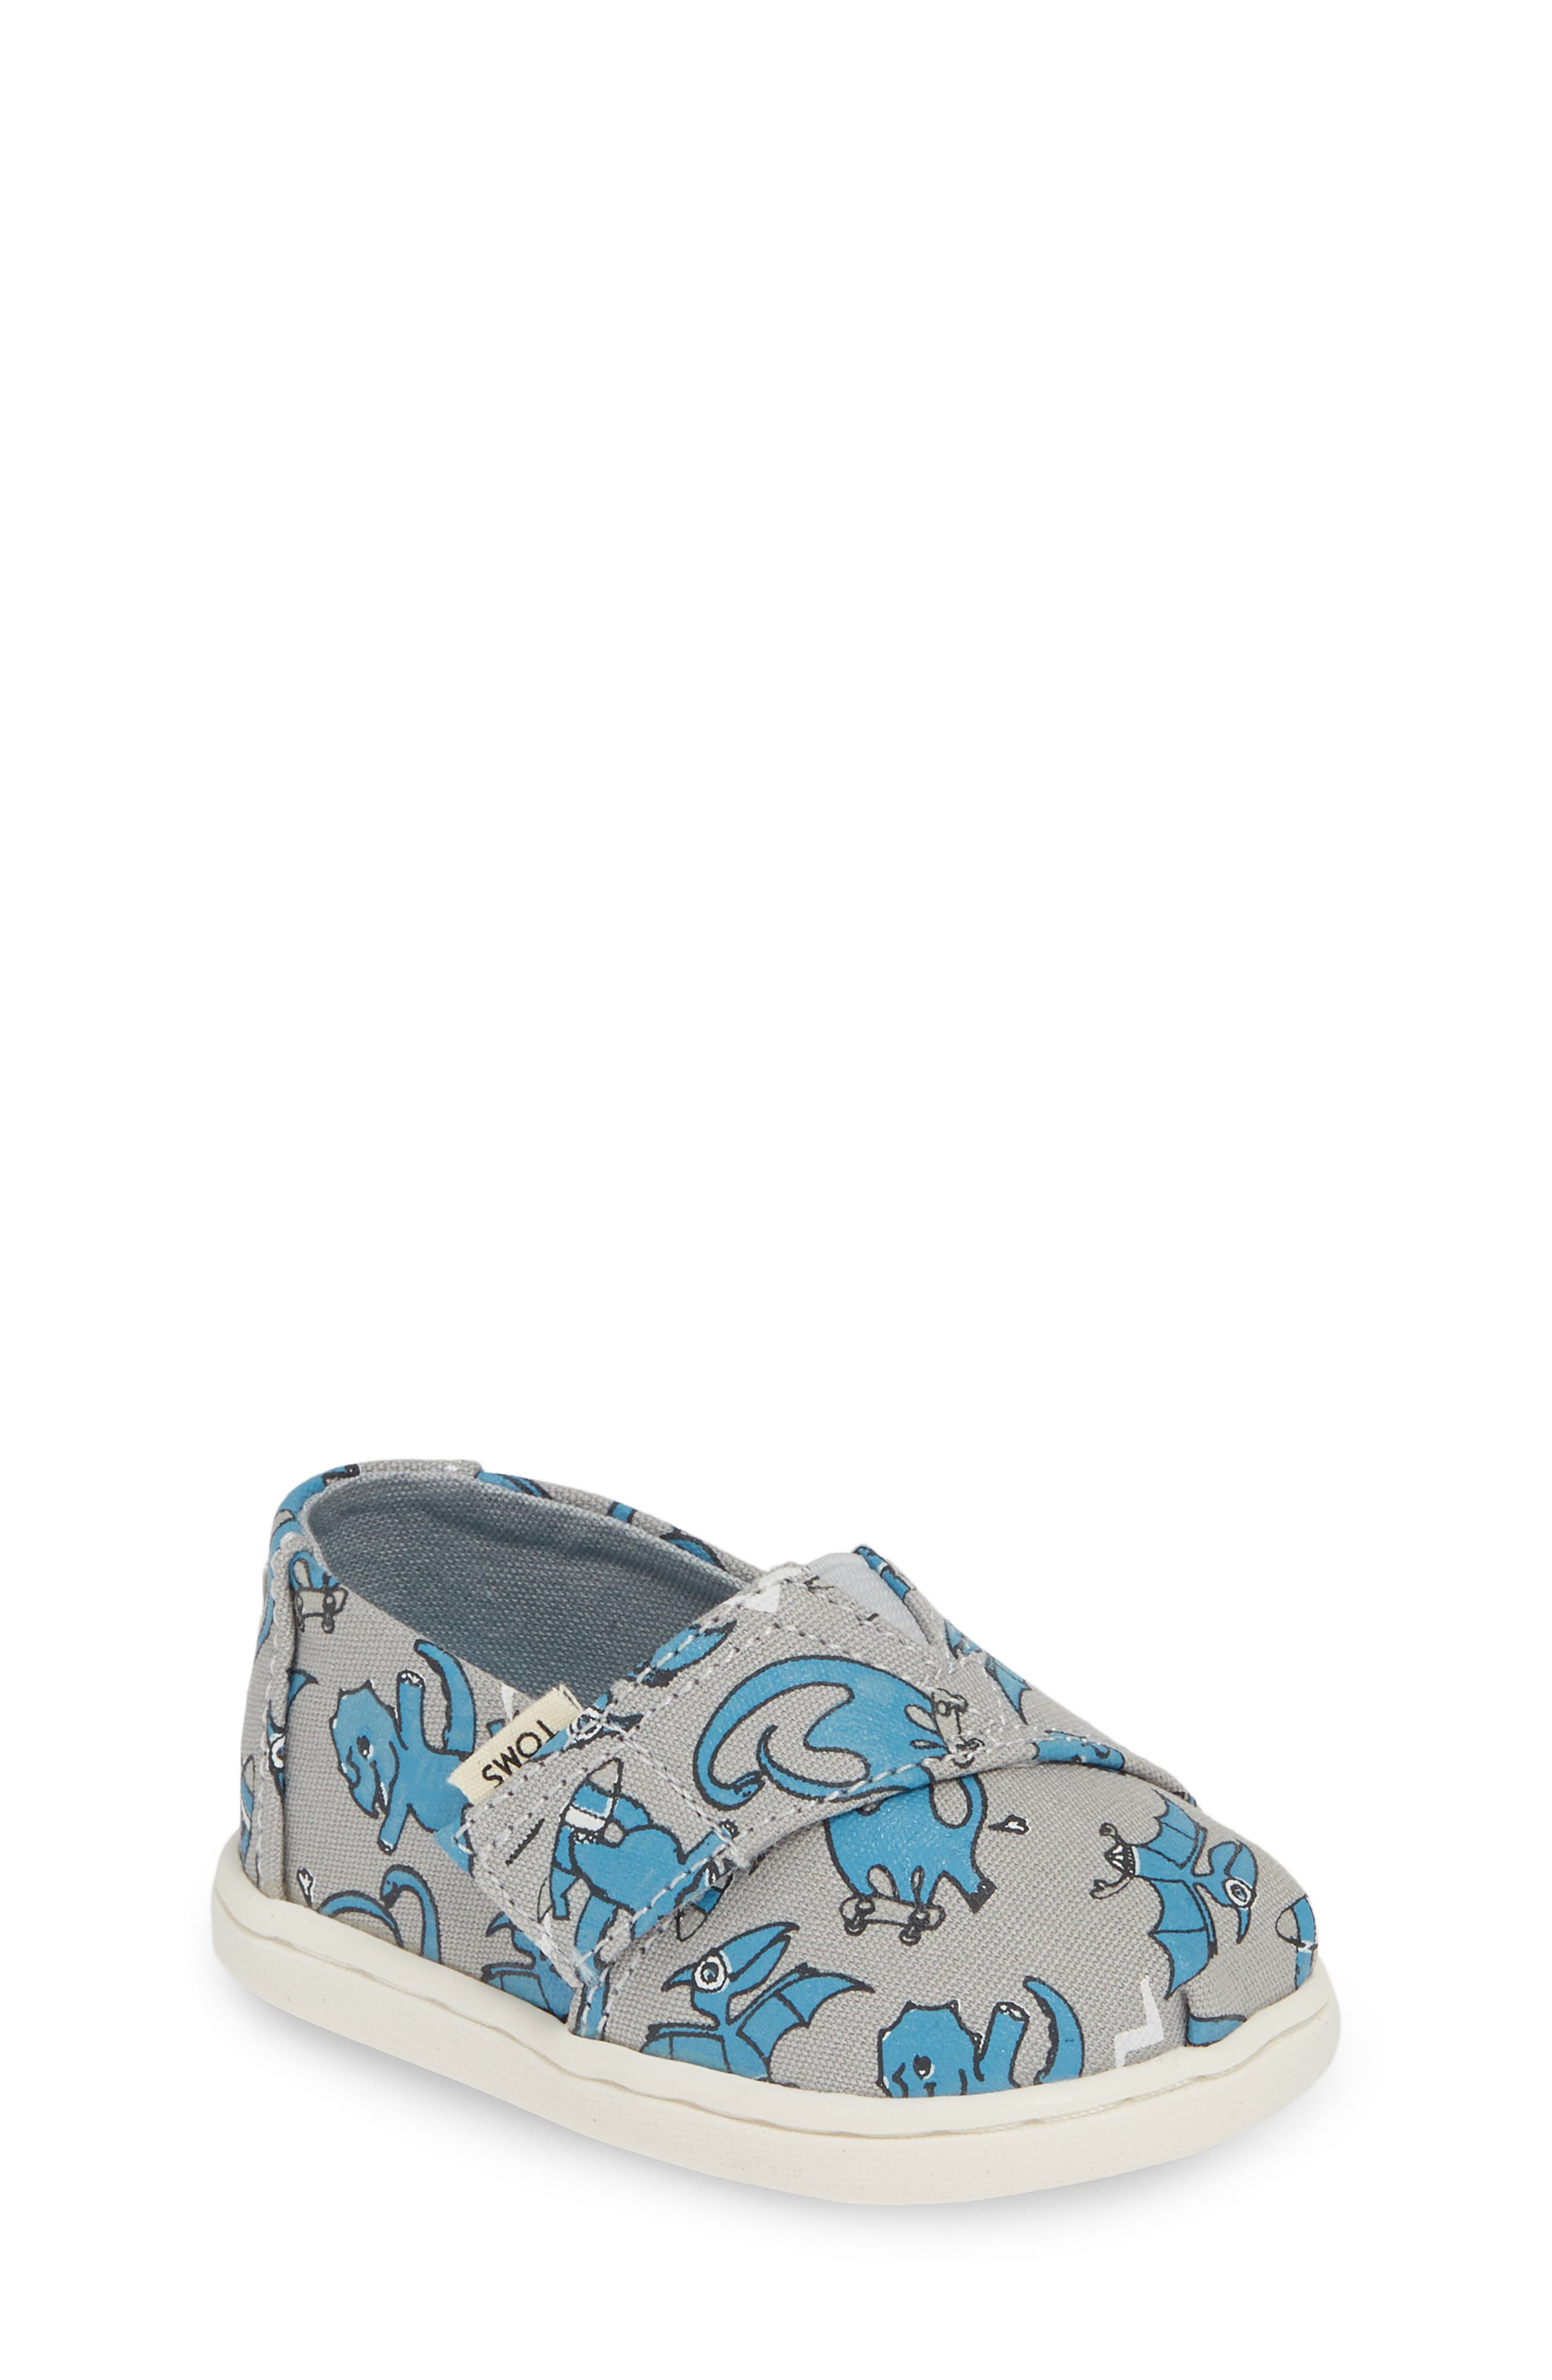 0d53bb1246a TOMS for Kids